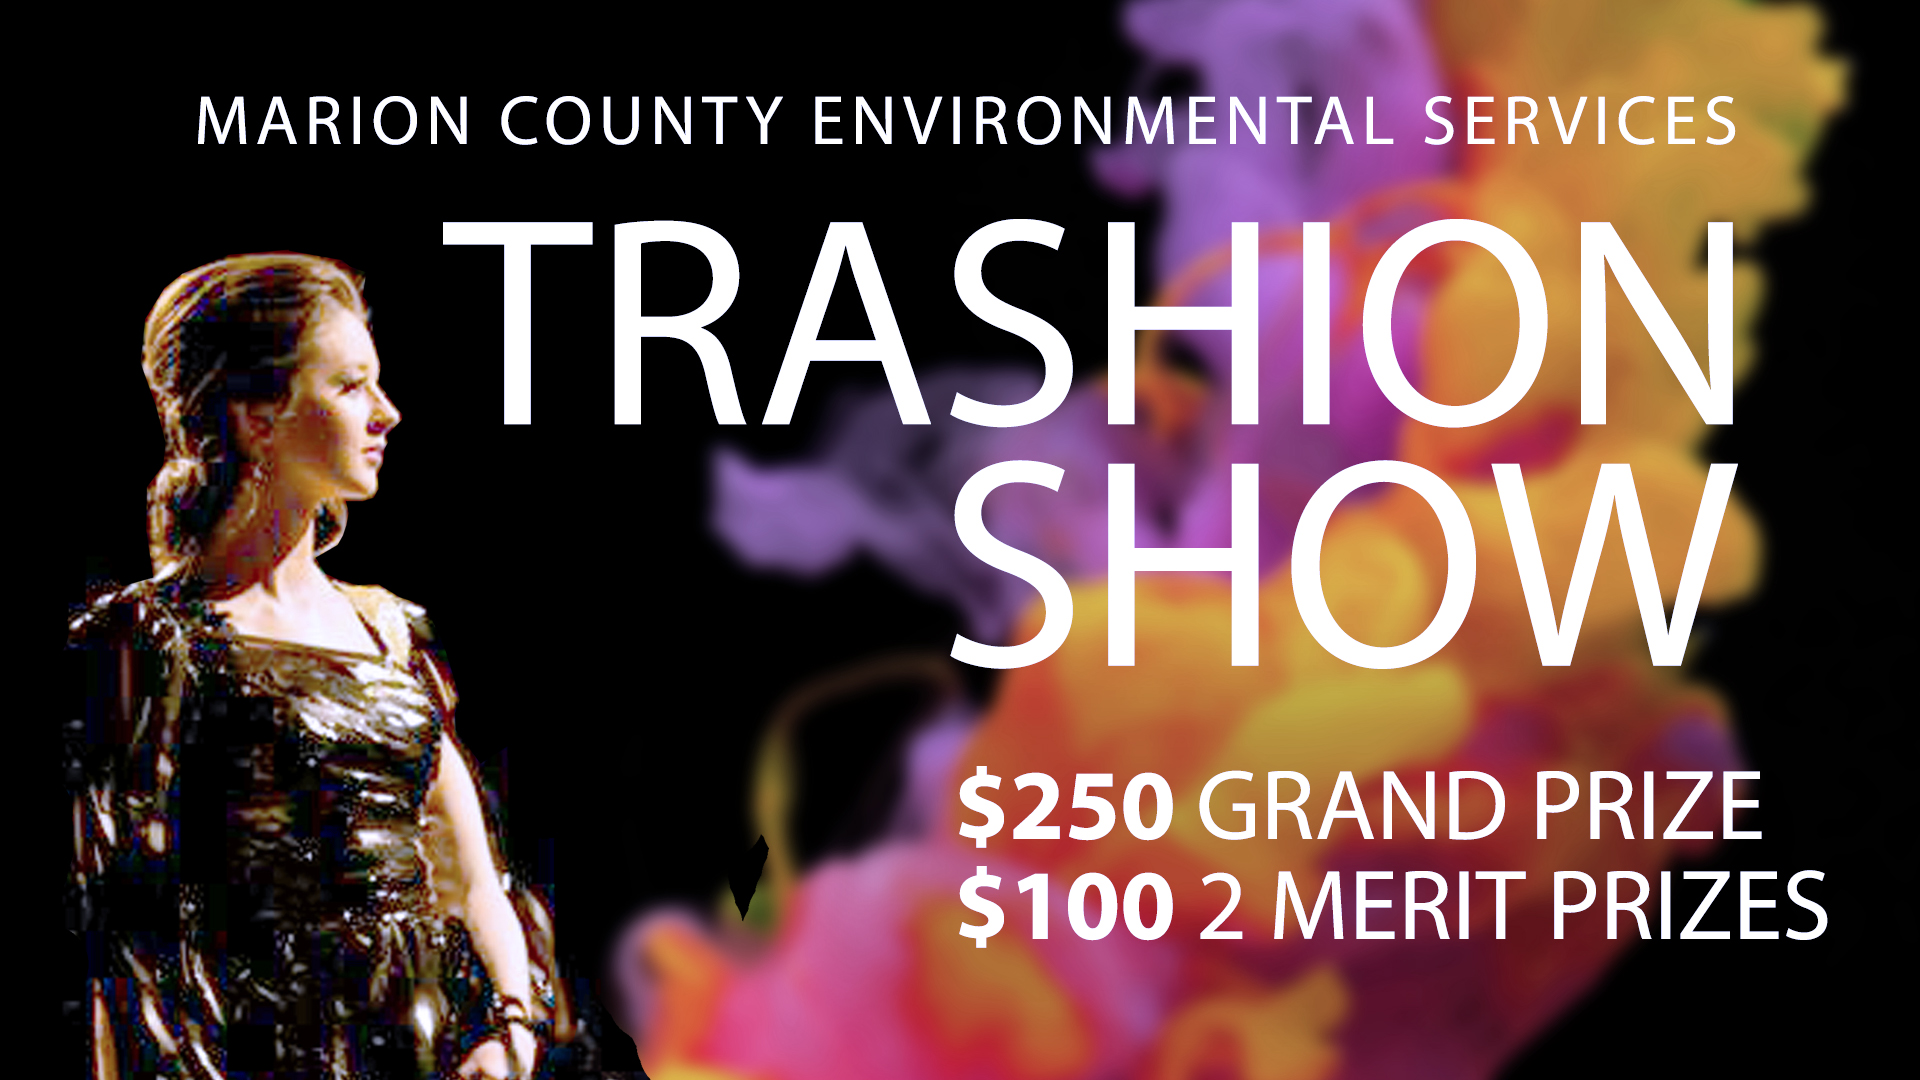 Marion County Enviornmental Services Trashion Show $250 Grand Prize $100 2 Merit Prizes